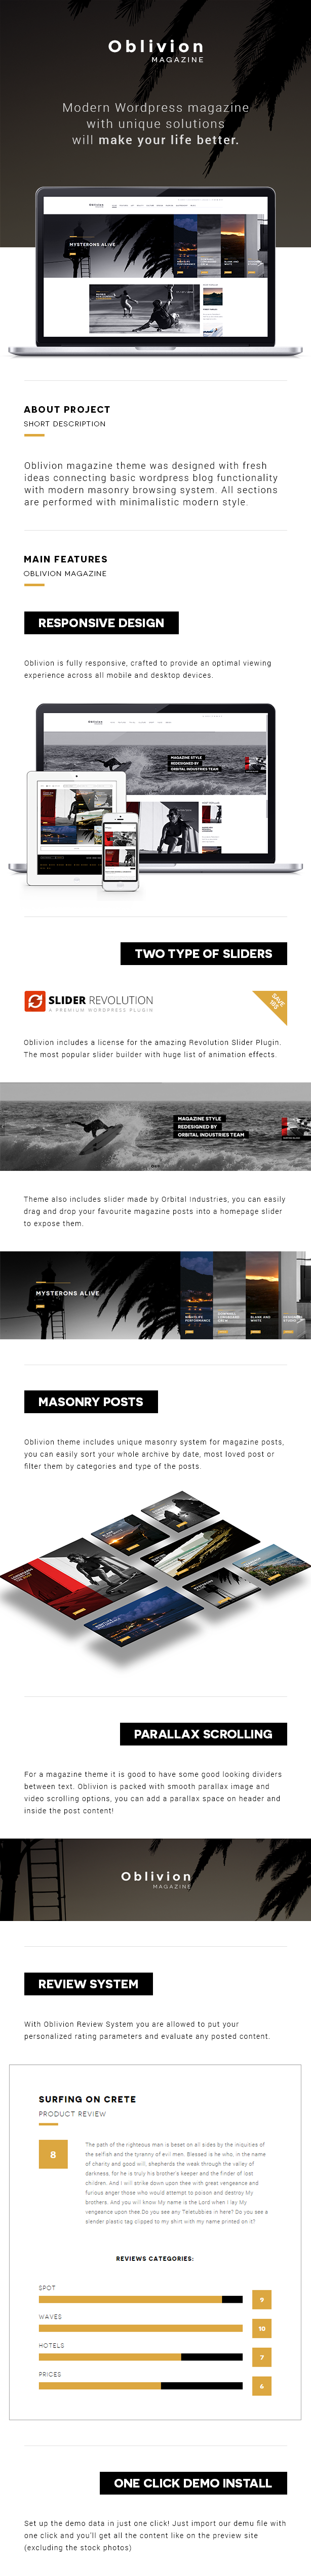 Oblivion - WordPress Magazine Theme